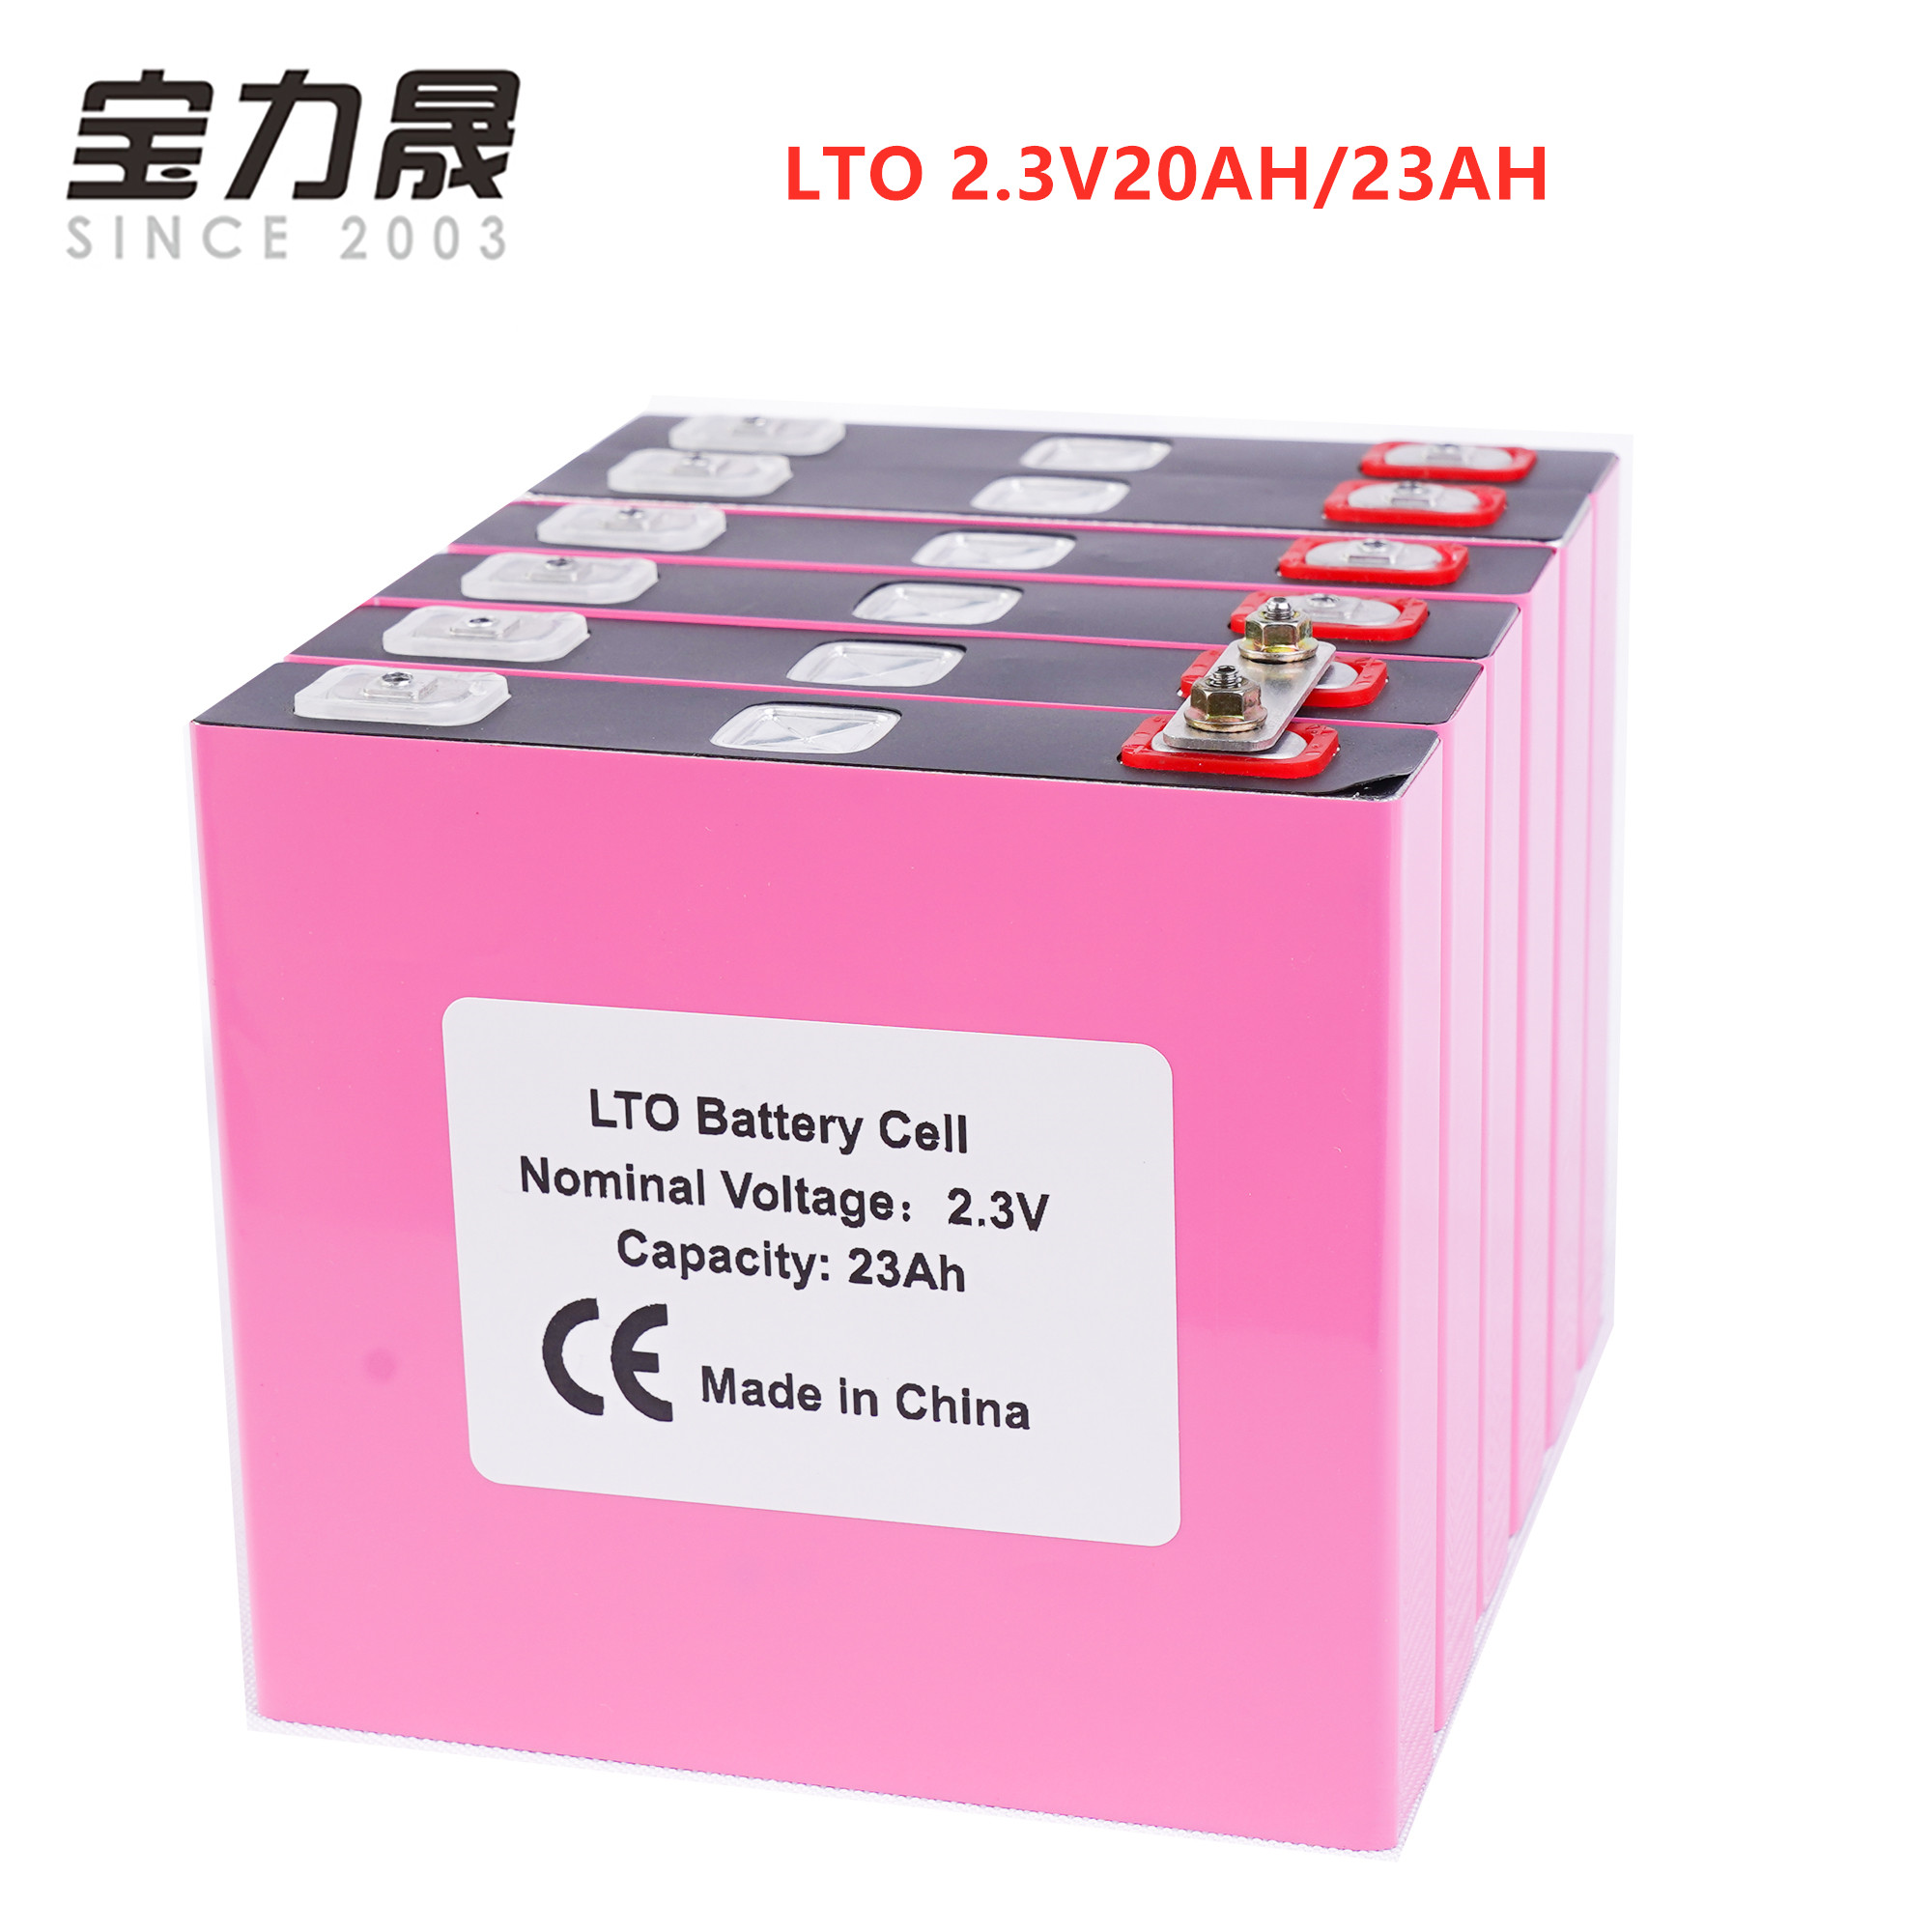 6PCS Lithium titanate battery 2.4V 20AH 23AH LTO <font><b>baterie</b></font> 6C 120A for diy 12v 36V <font><b>48V</b></font> bus energy storage system car star boat EV image